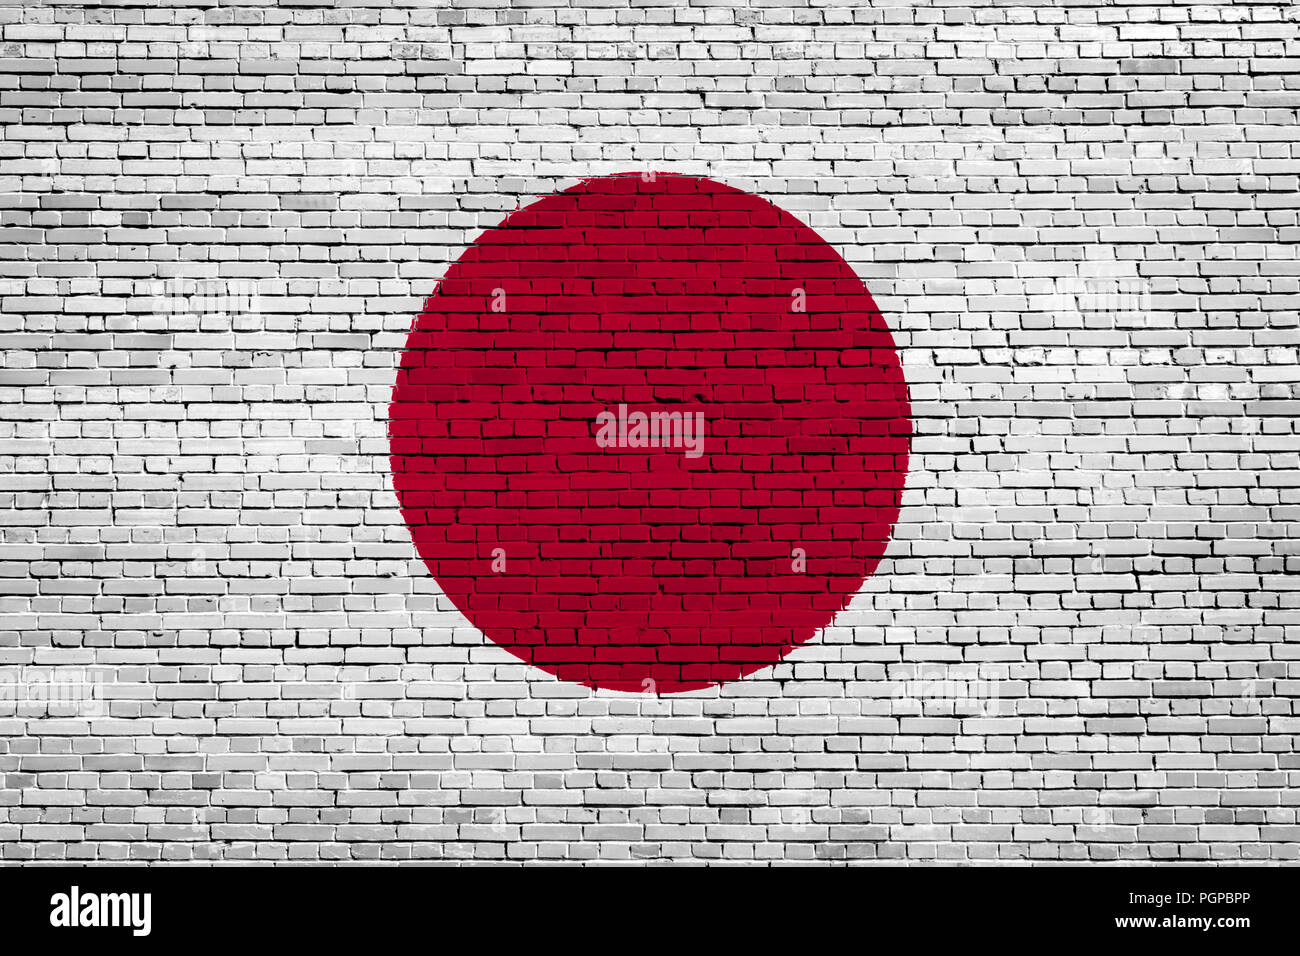 National flag of Japan on a brick background Stock Photo